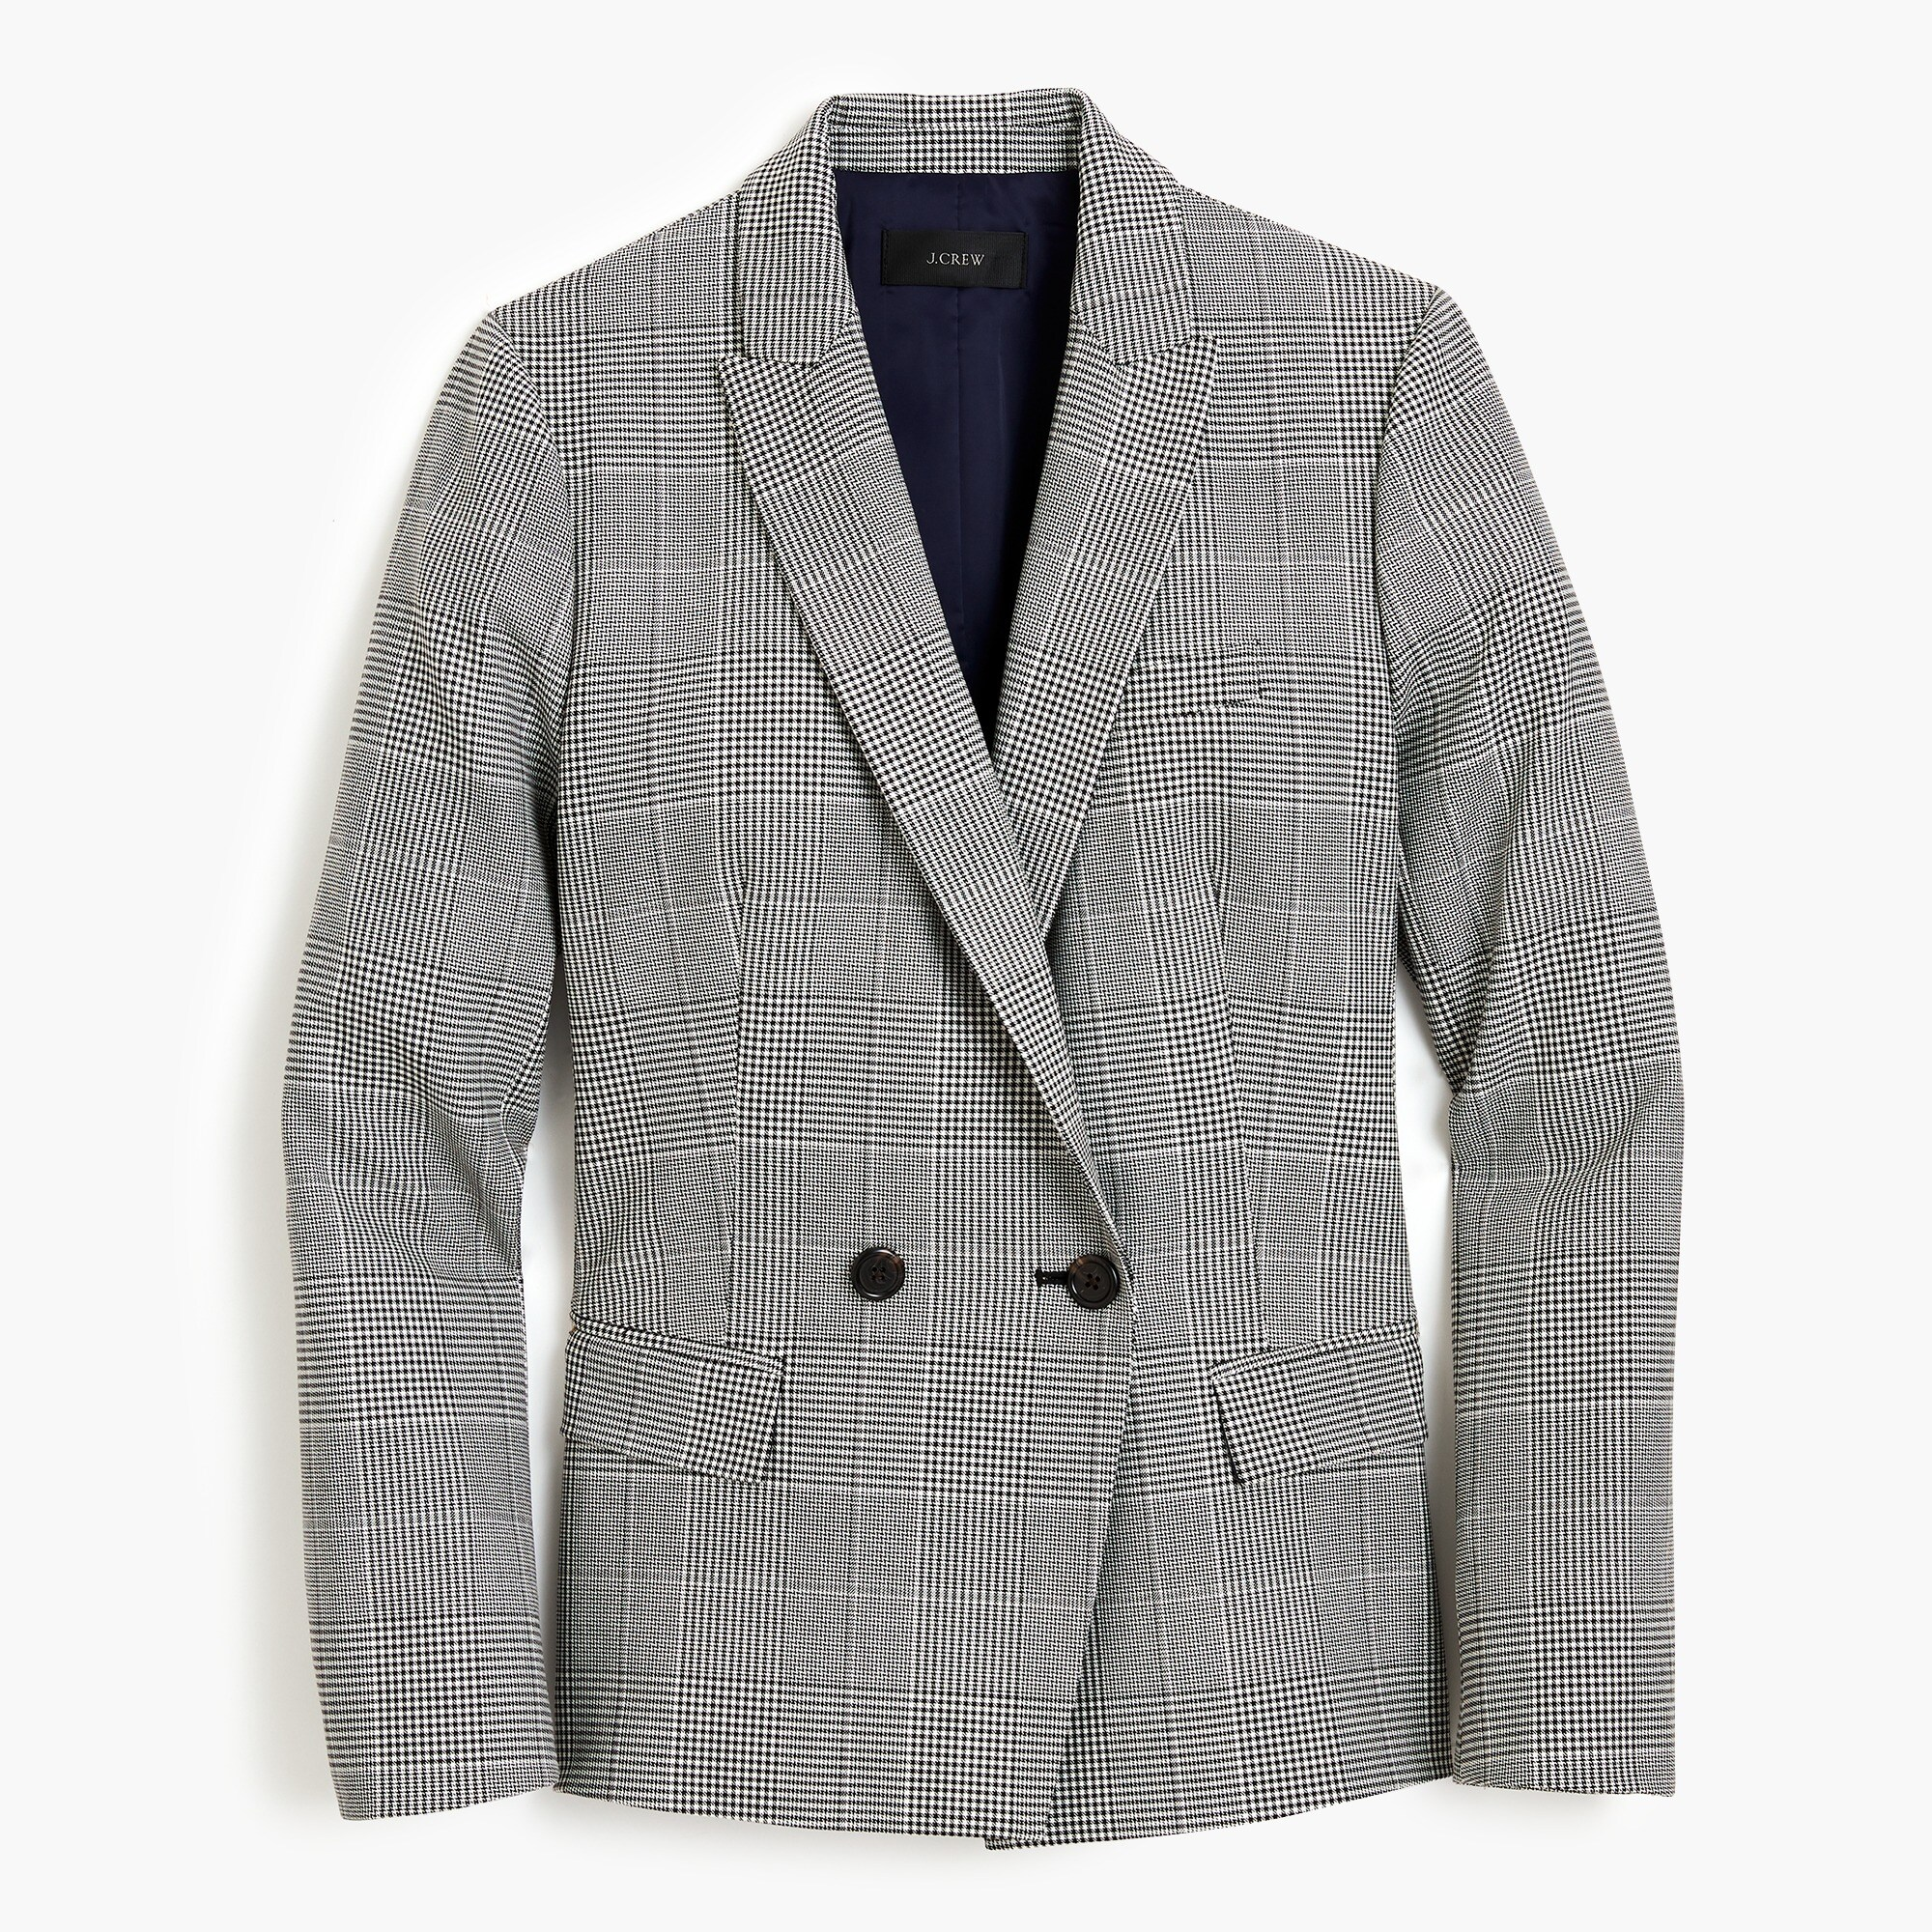 Image 2 for Dover blazer in glen plaid